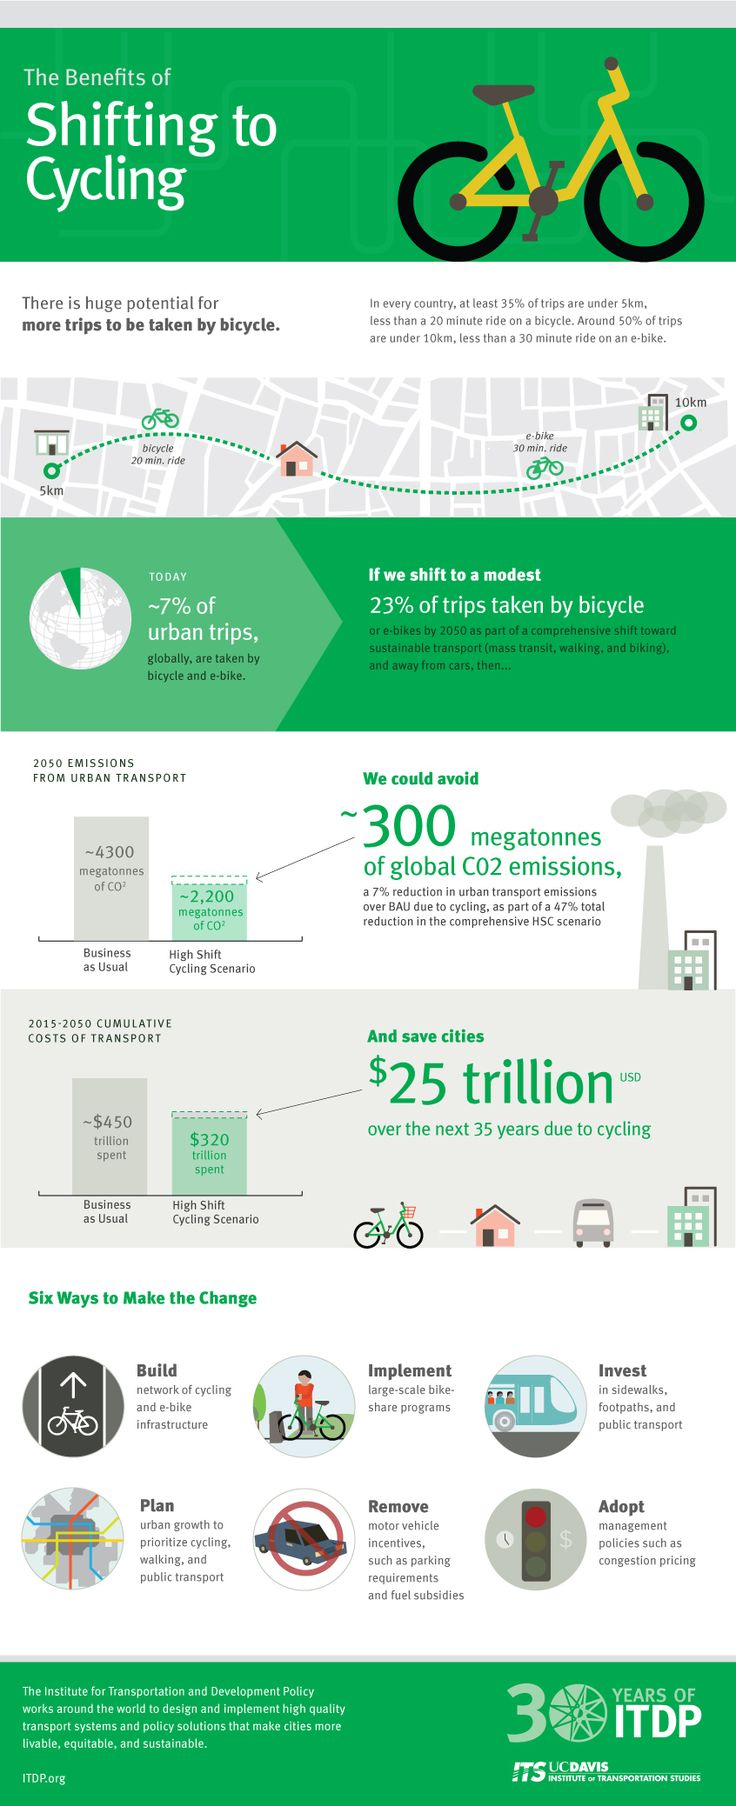 How Cycling Can Save Cities Money and Emissions